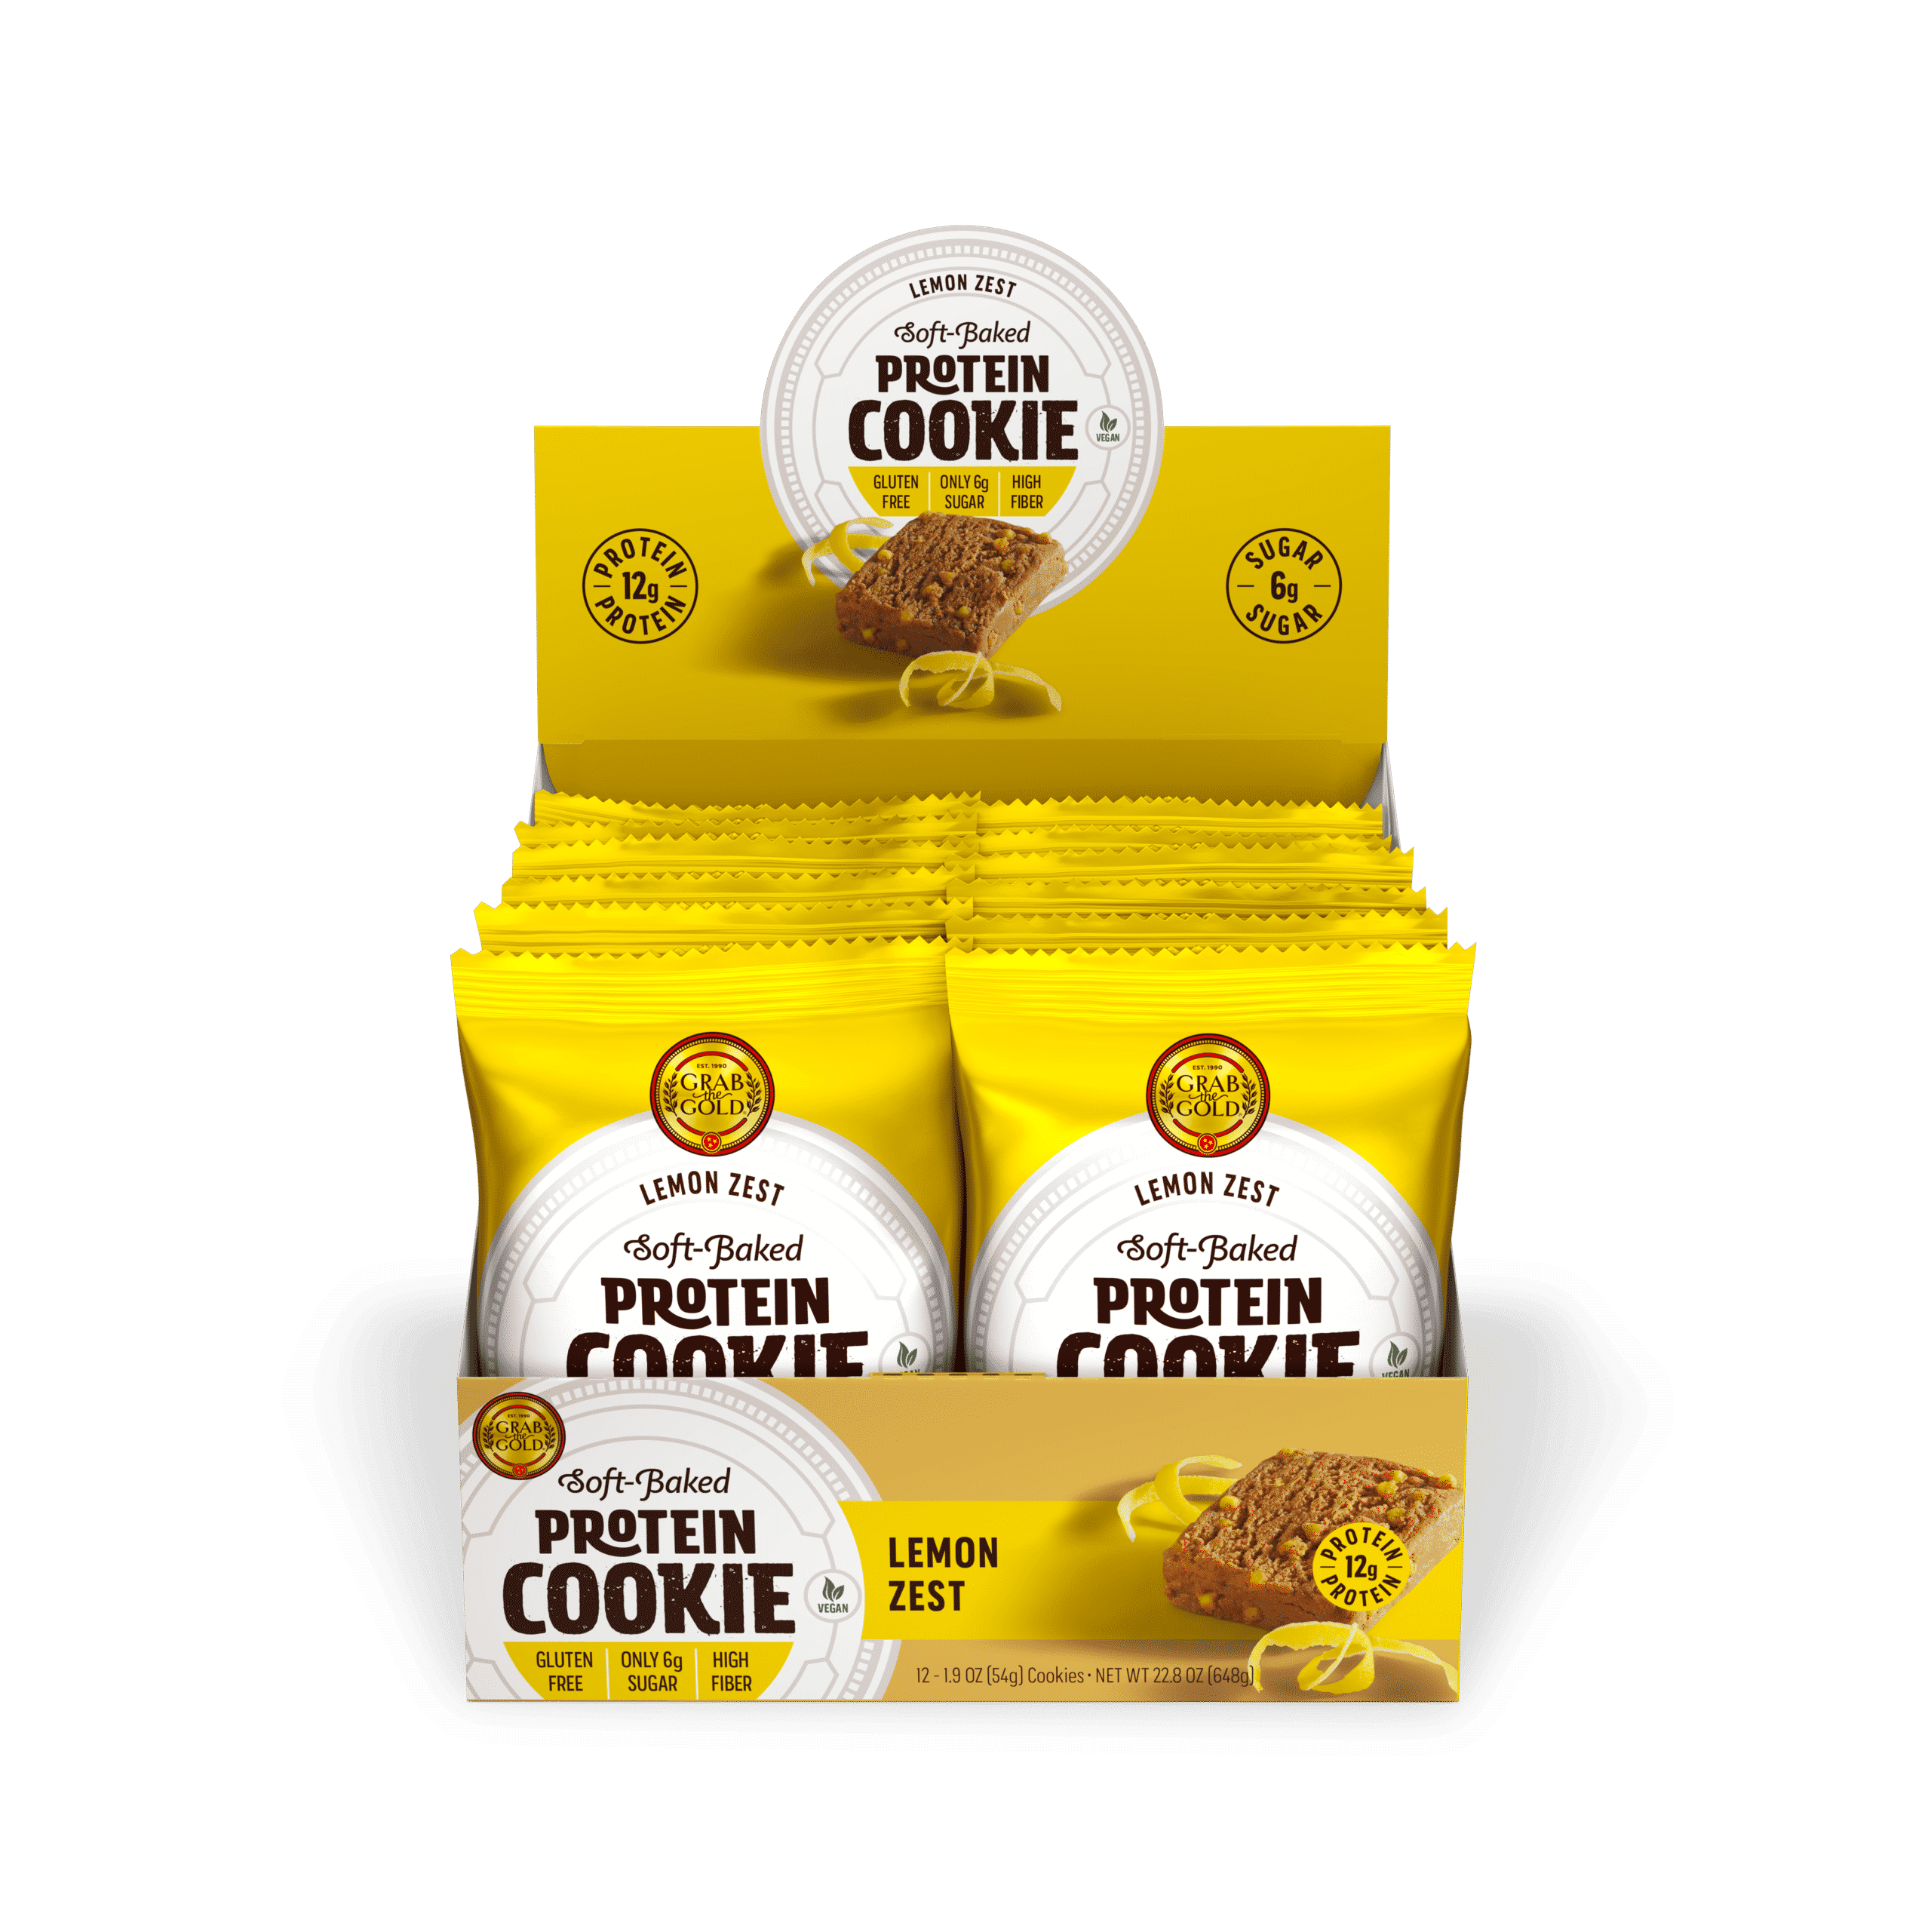 Grab The Gold Protein Cookie POS LMZ Open Box 08.20